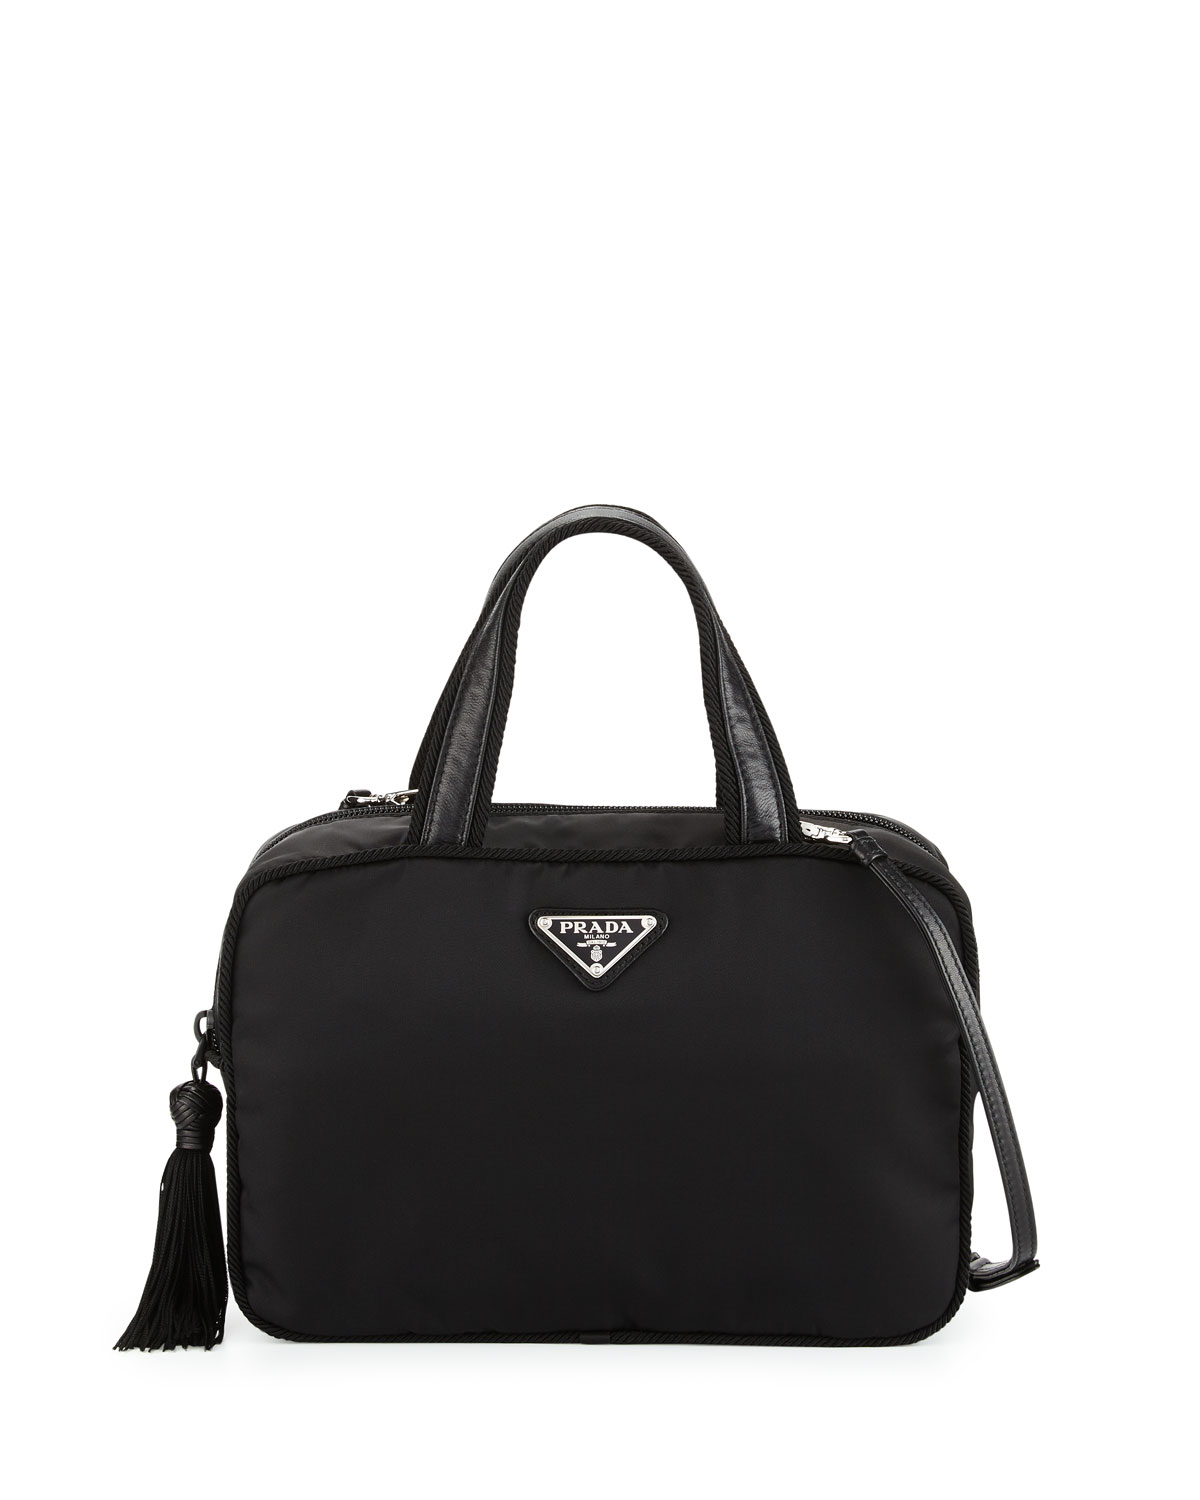 afedf896e7b7 Prada Small Double-Handle Nylon Tote Bag